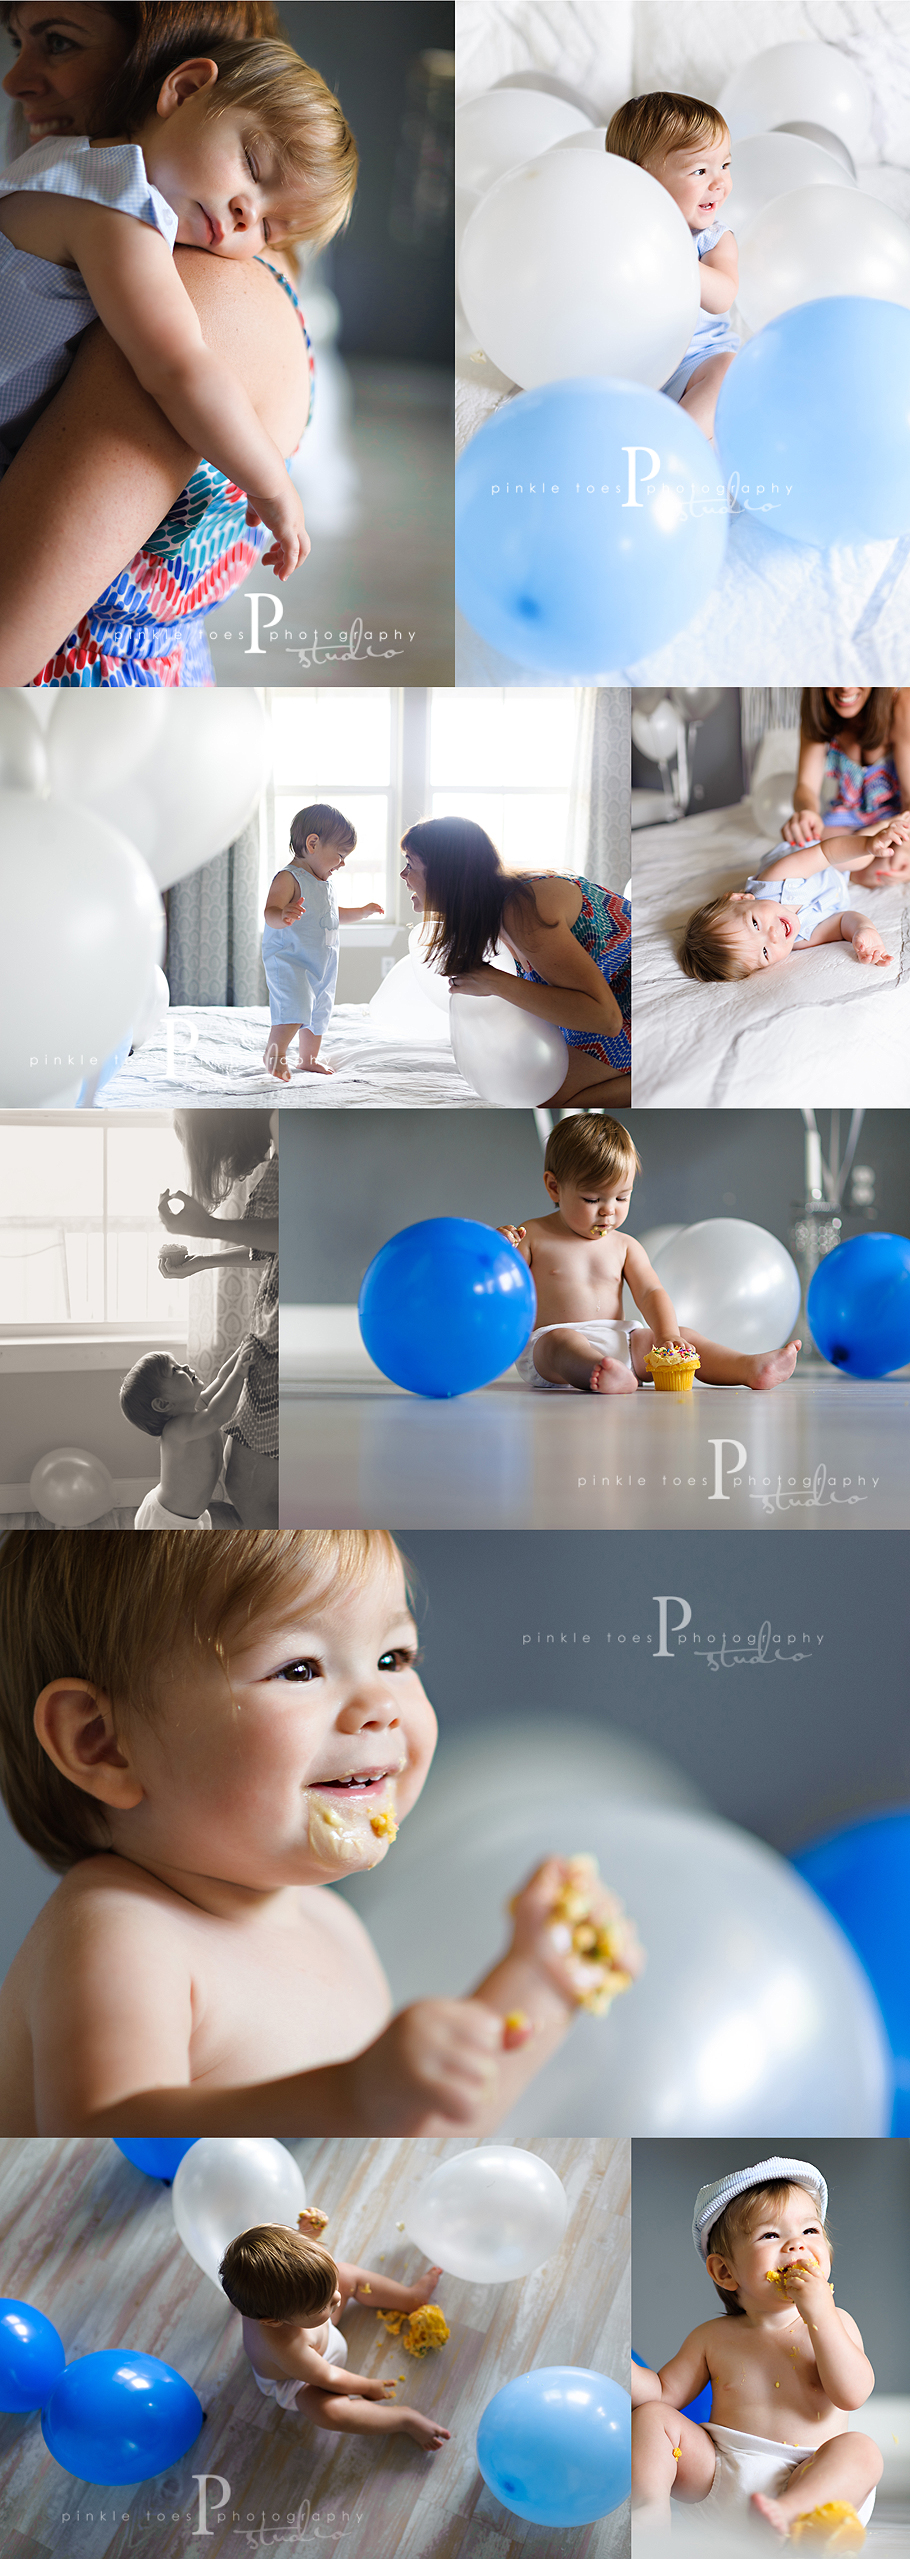 david-austin-baby-photographer-studio.jpg